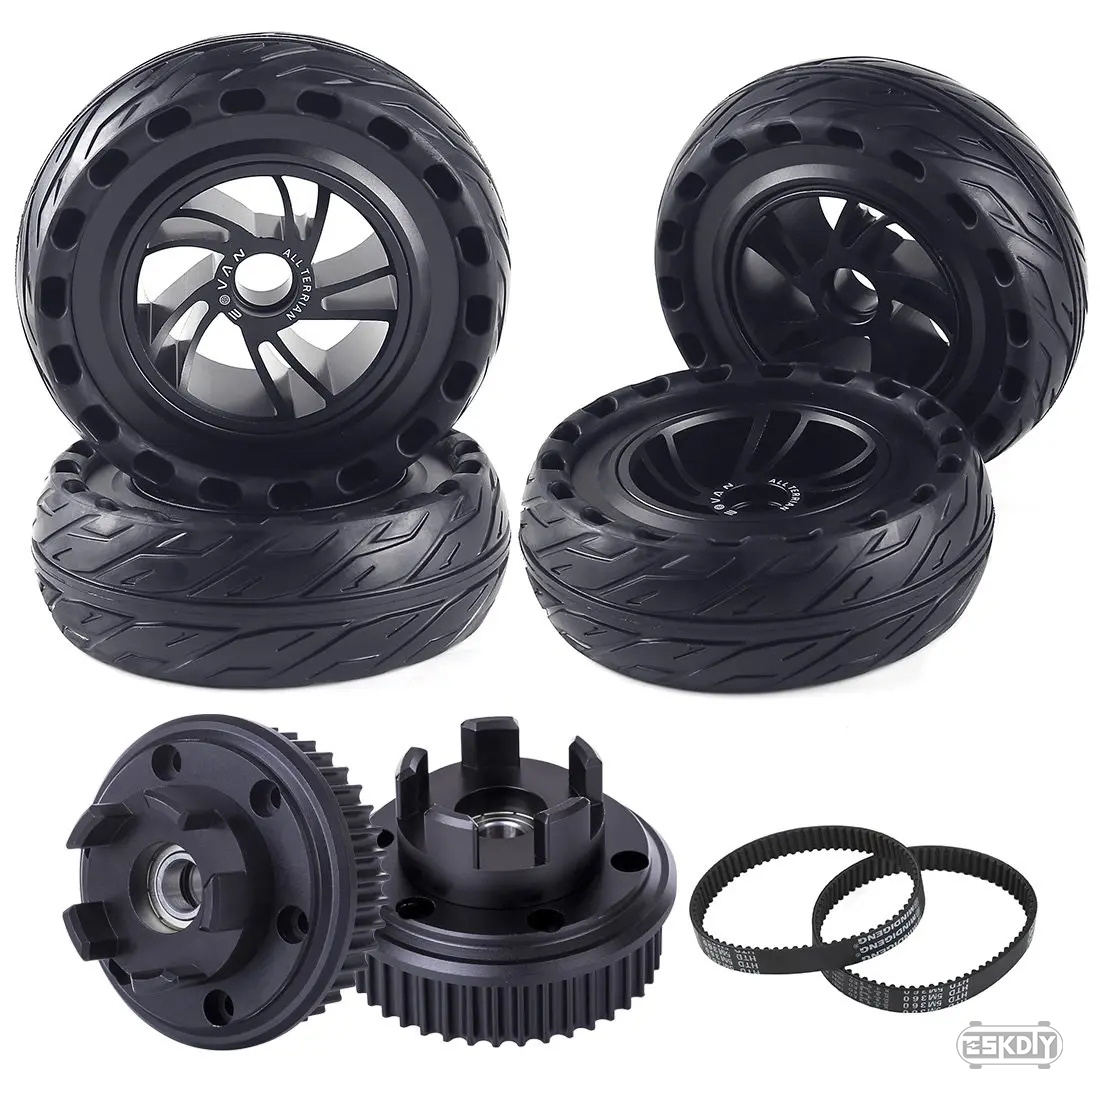 AT165 Airless Rubber Wheels Set for Belt Drive -All Terrain